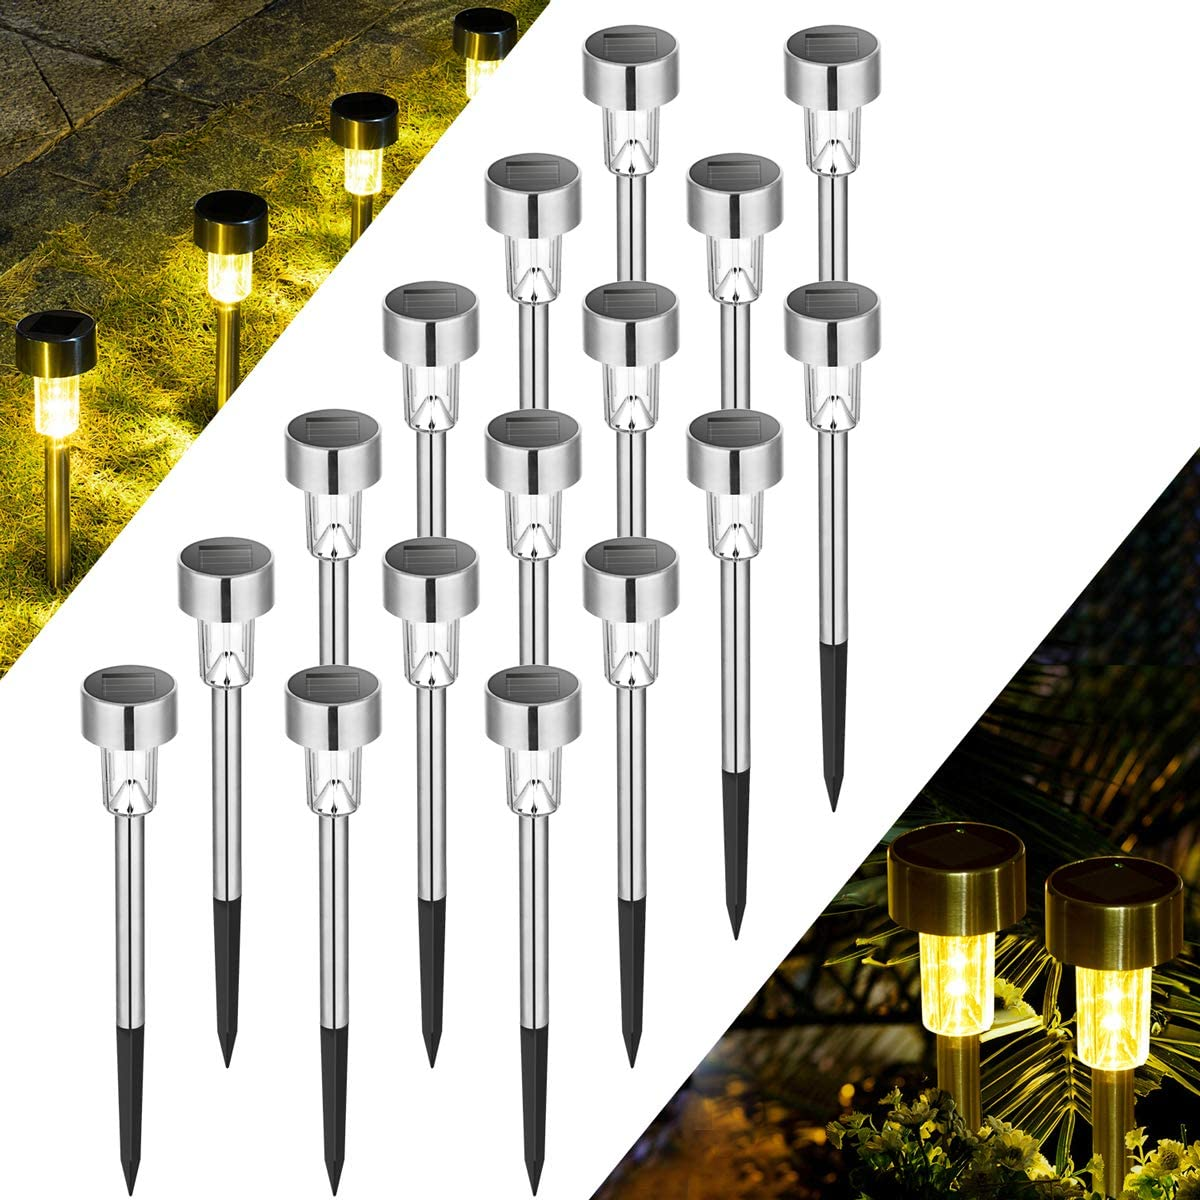 Solpex 16 Pack Solar Lights Outdoor Pathway ,Solar Walkway Lights Outdoor,Garden Led Lights for Landscape/ Patio/Lawn/Yard/Driveway-Warm White (Stainless Steel)